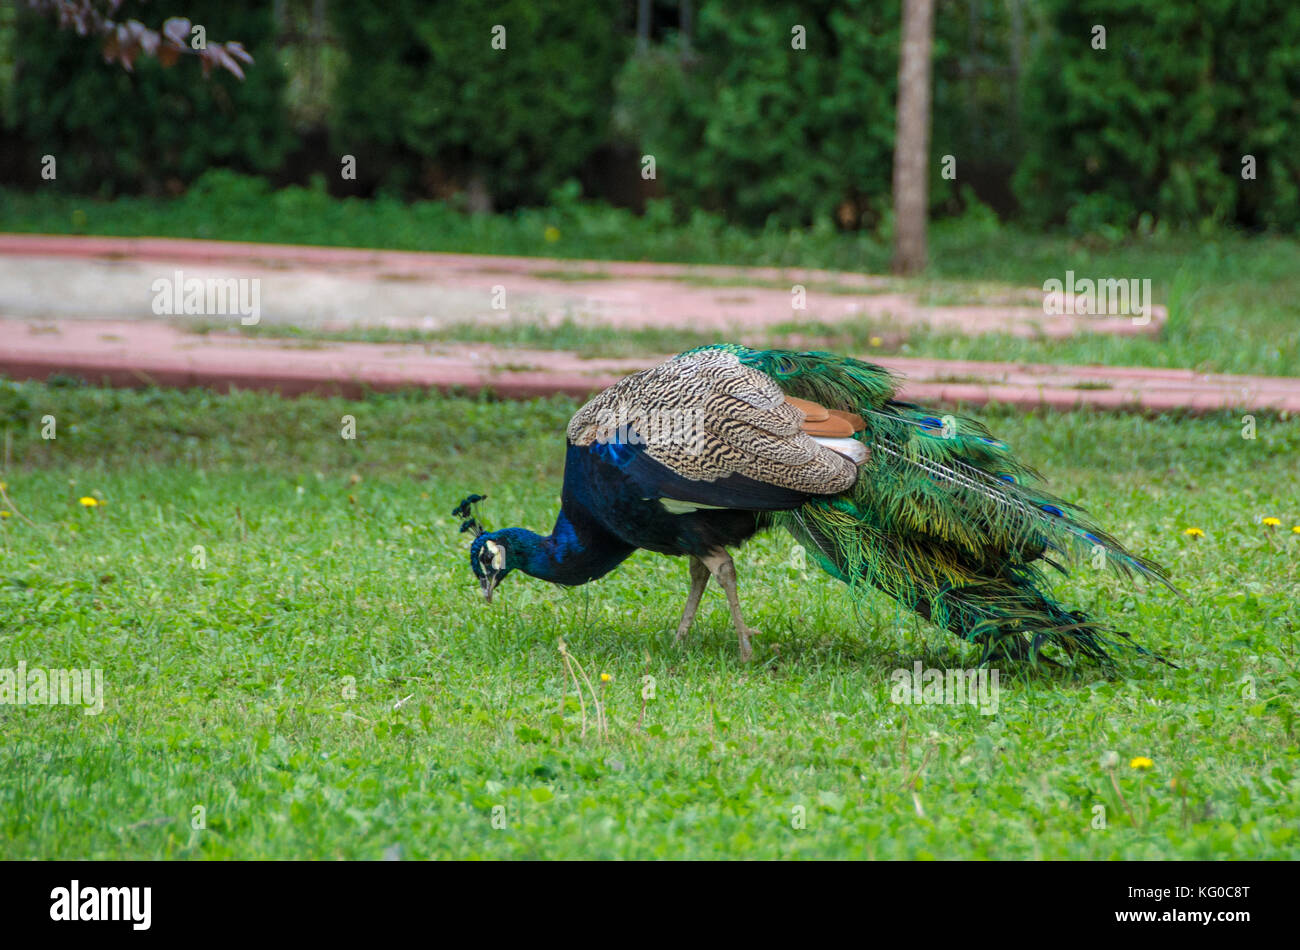 Peacock Bird on green grass - Stock Image